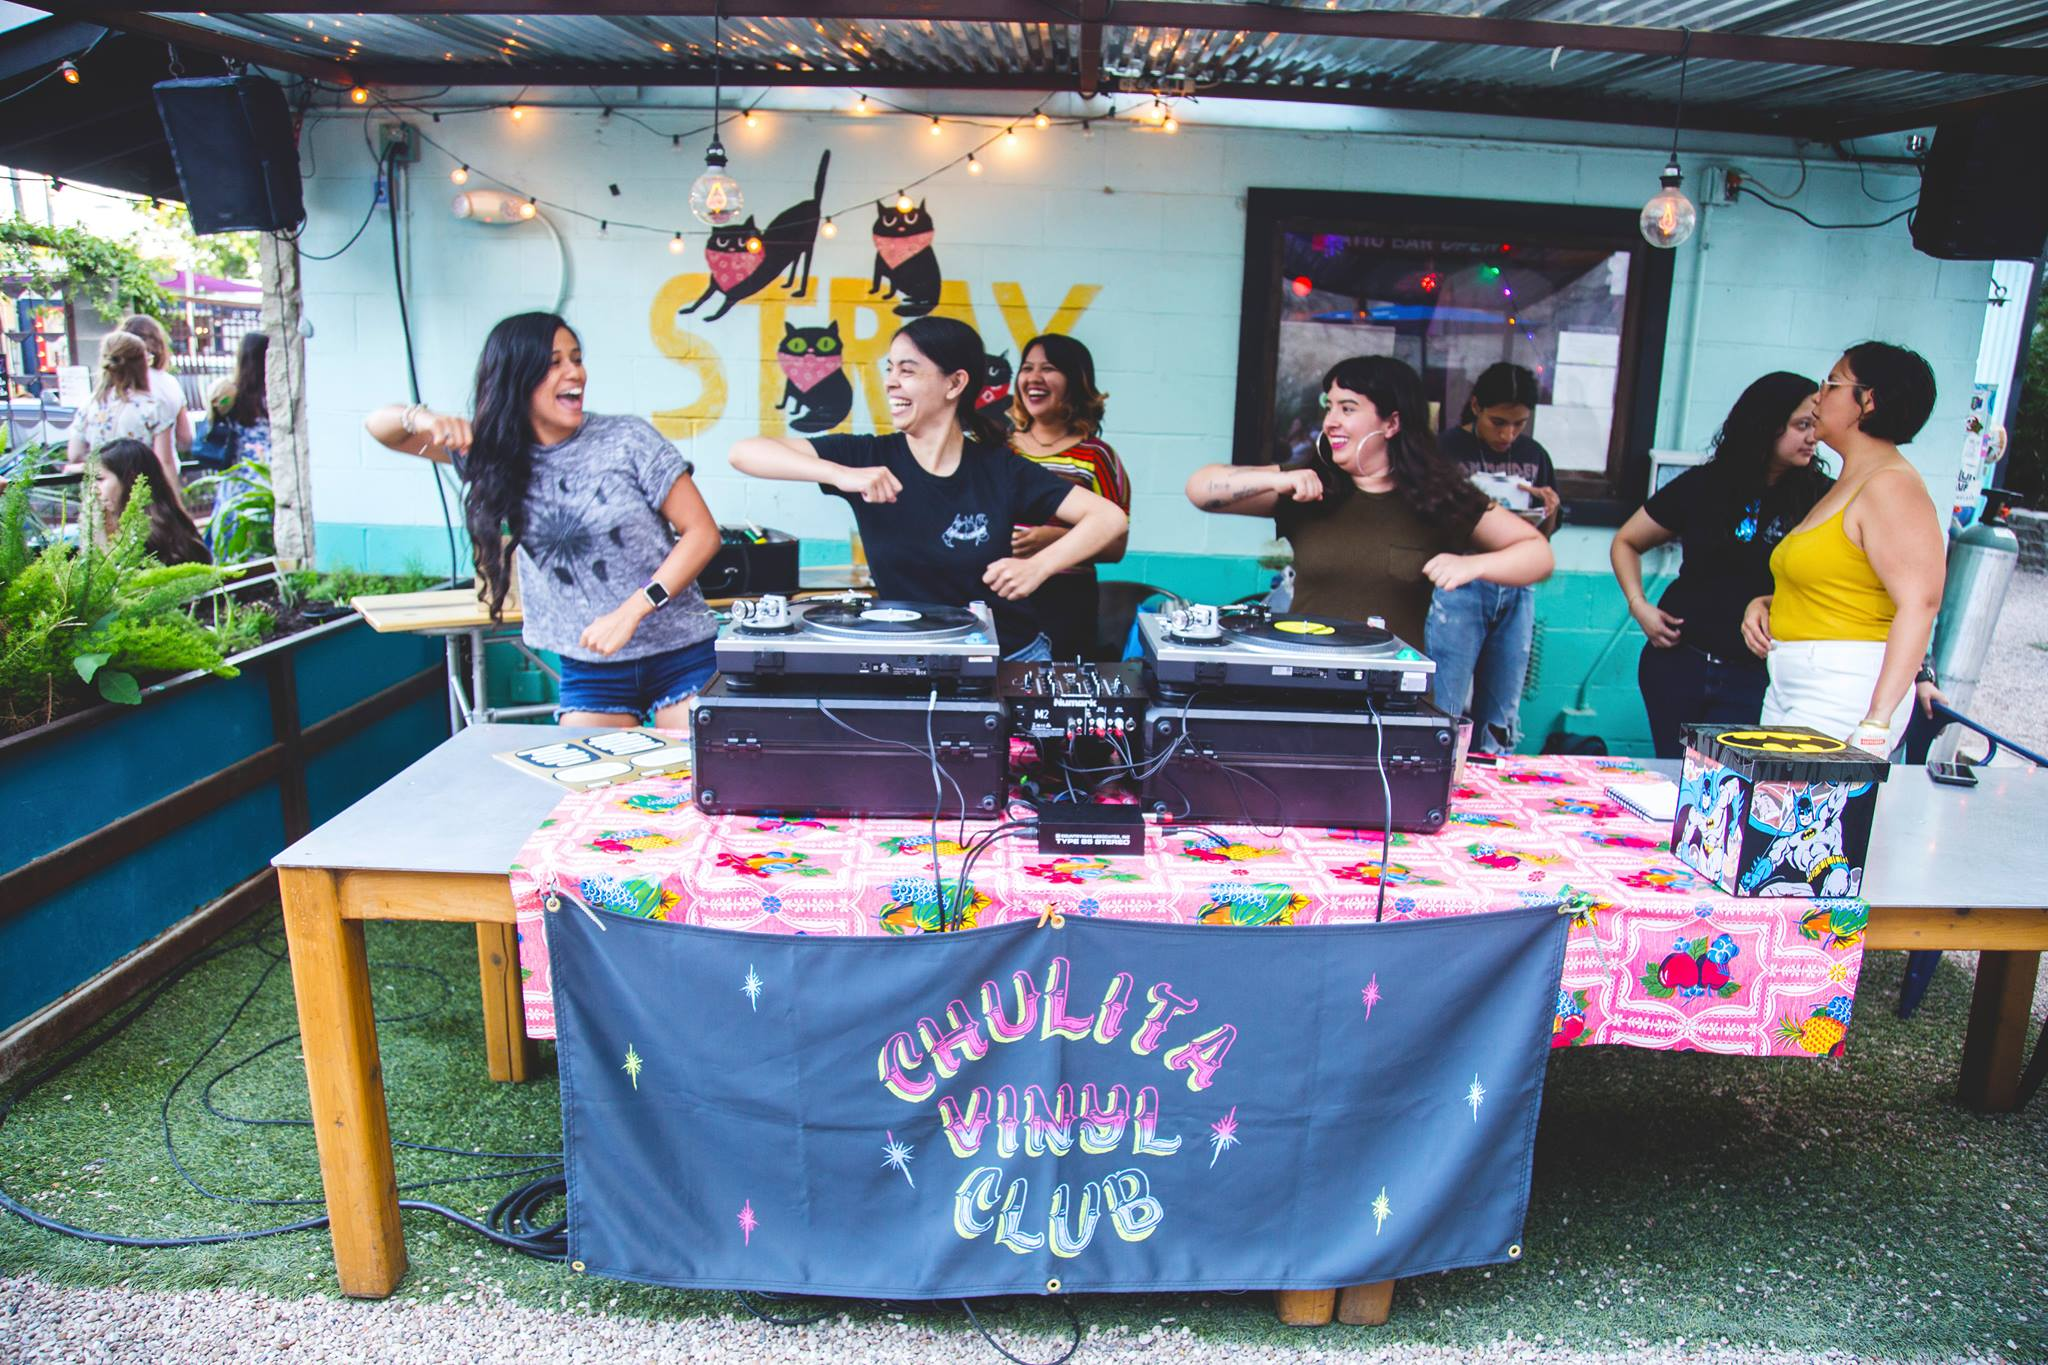 Chulita Vinyl Club was launched in December 2014 as an all-girl all-vinyl club for self-identifying womxn of color in the context of providing a space for empowerment and togetherness. They stand united as a female DJ collective spanning 7 national chapters bringing together a community of vinyl loving girls.